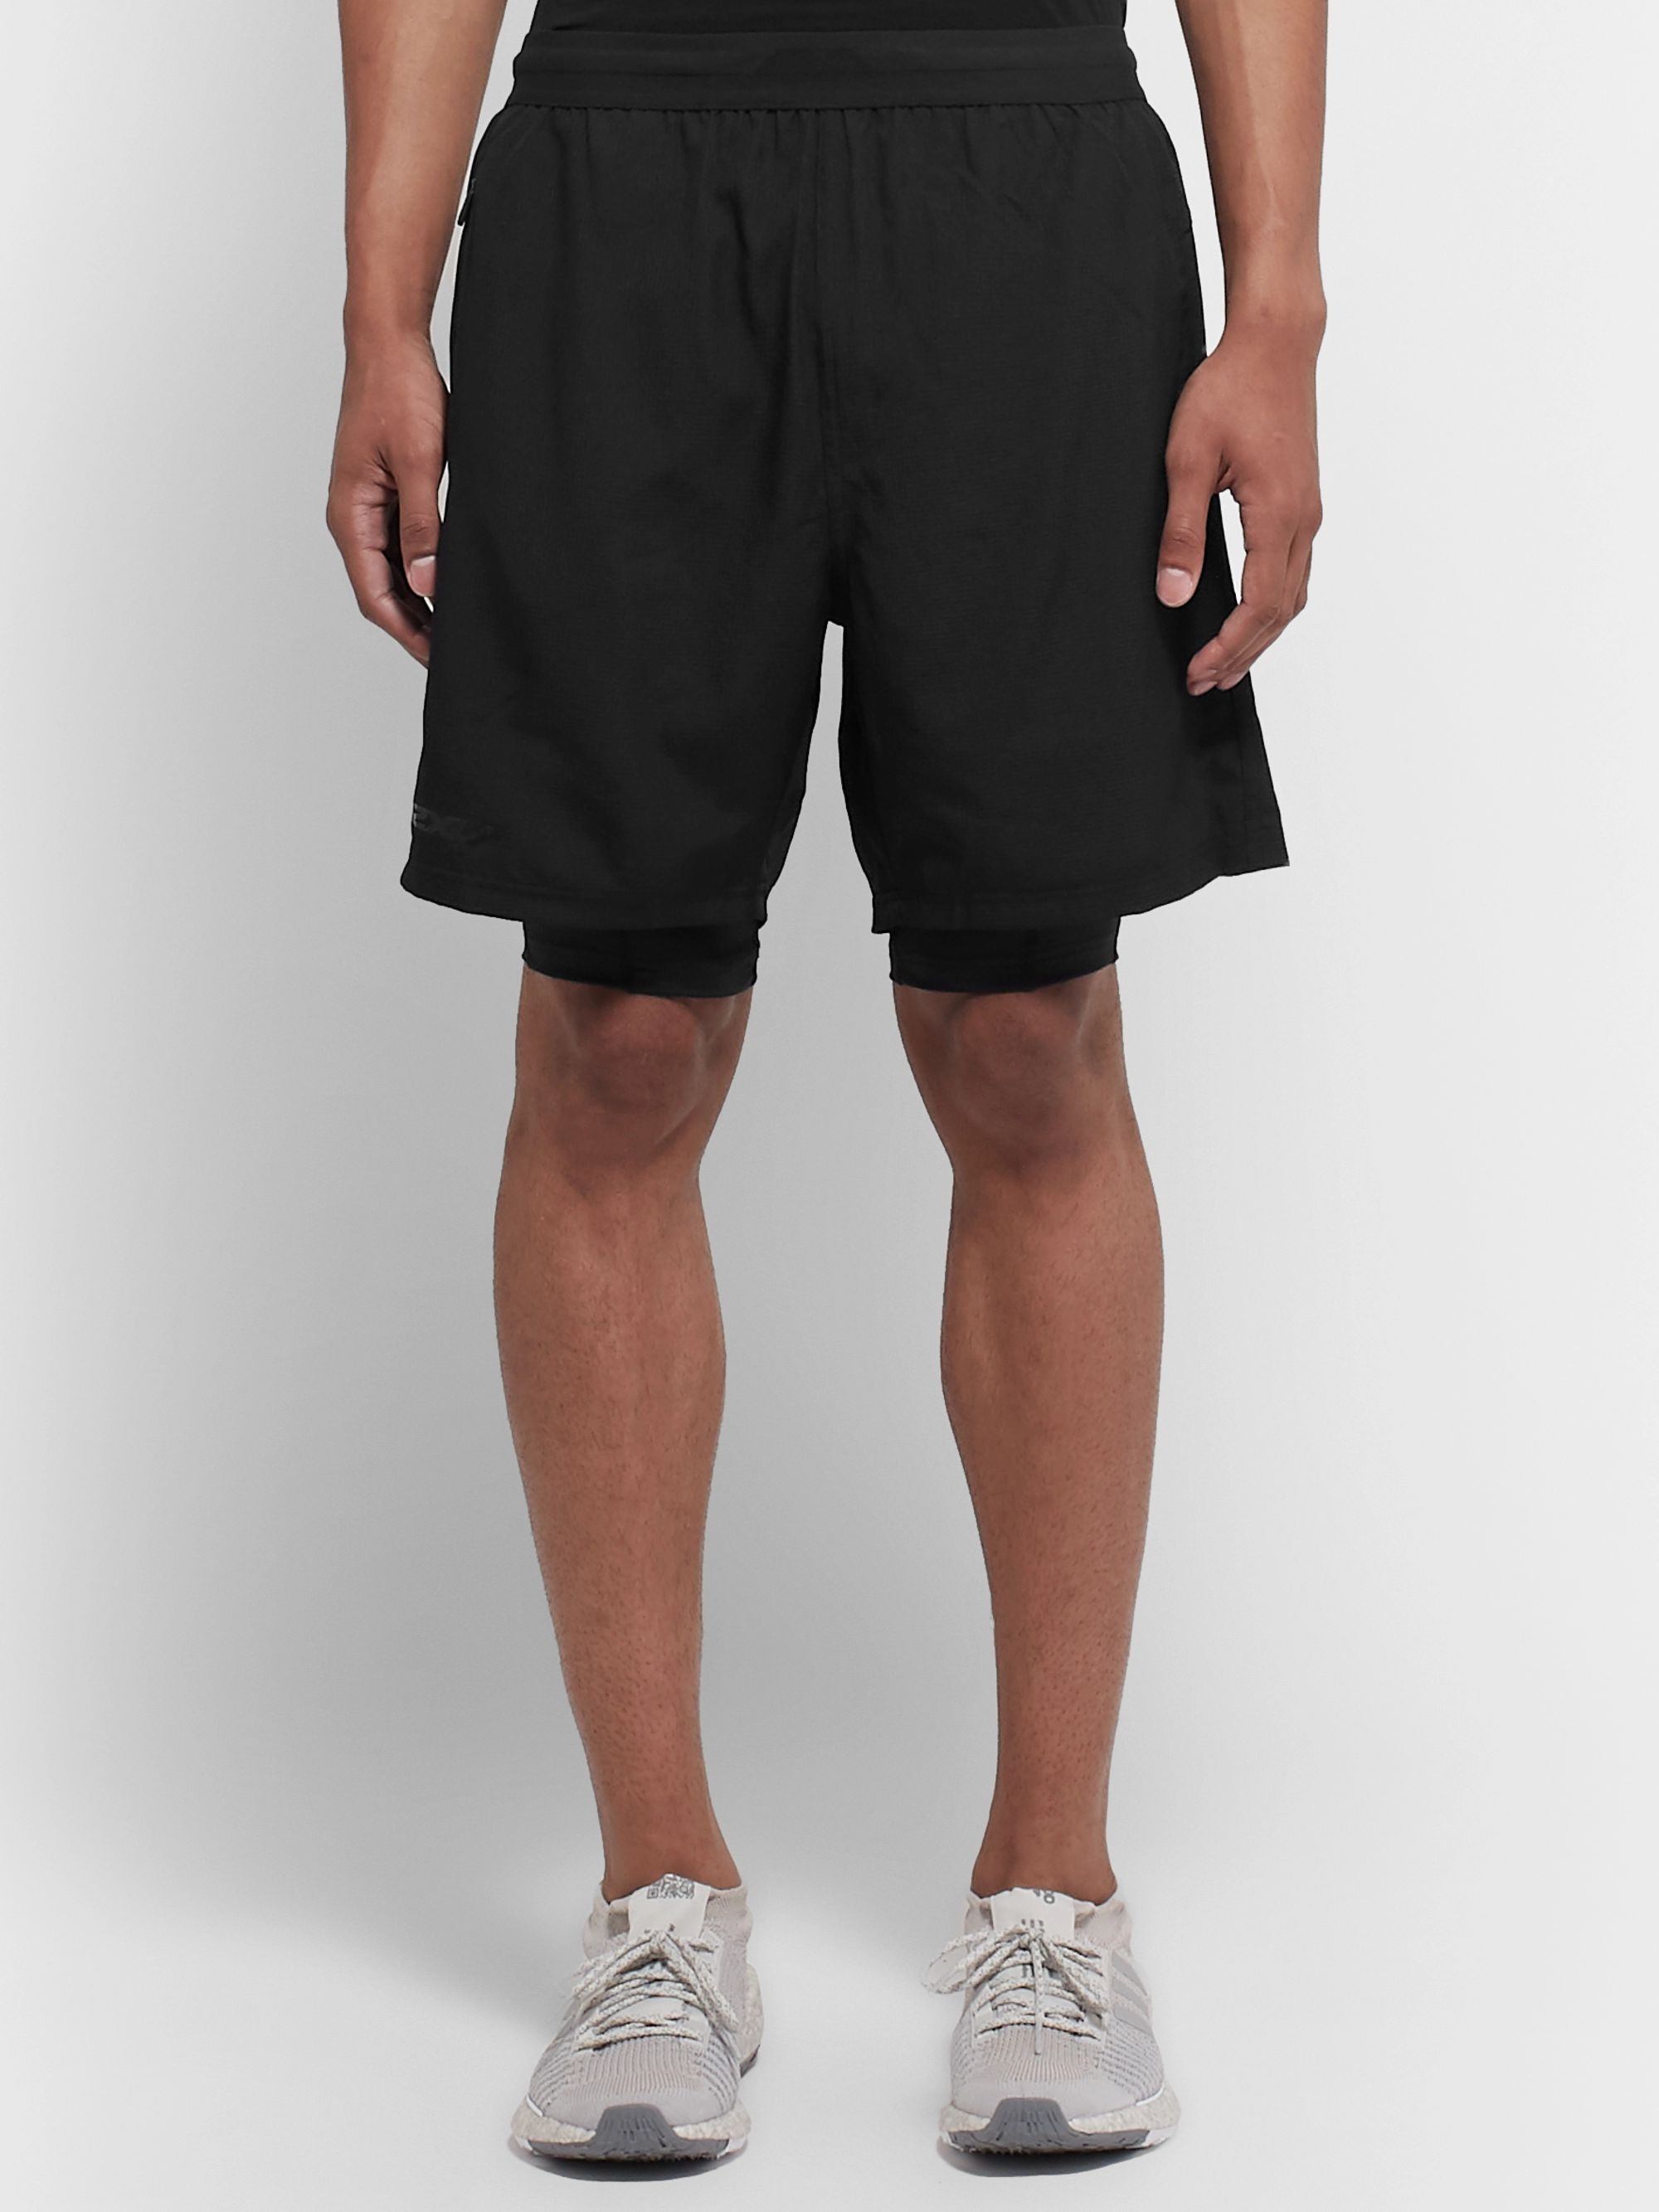 2XU 2-In-1 Ripstop Compression Shorts